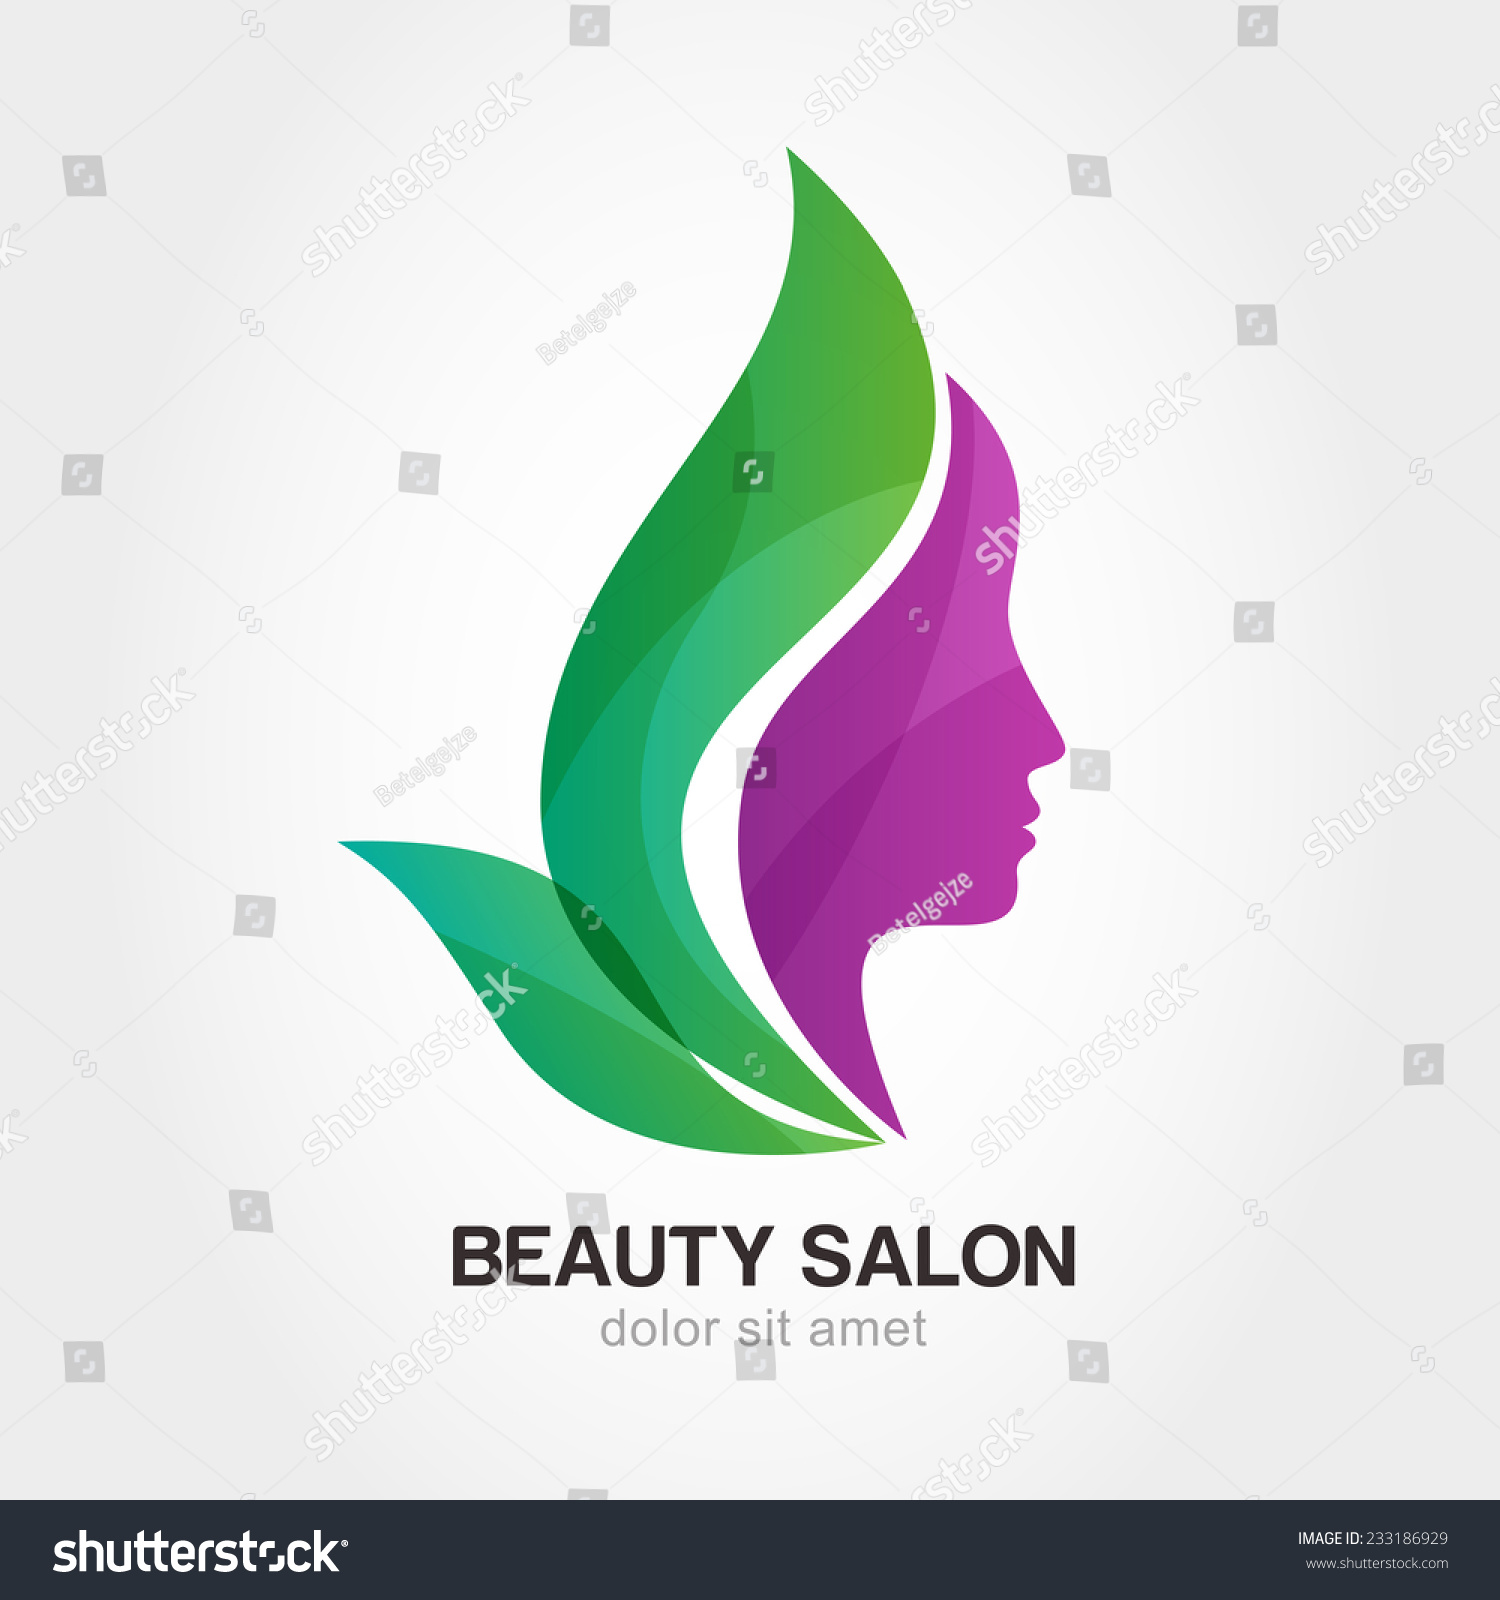 Womans face flower leaves abstract design stock vector for Abstract beauty salon